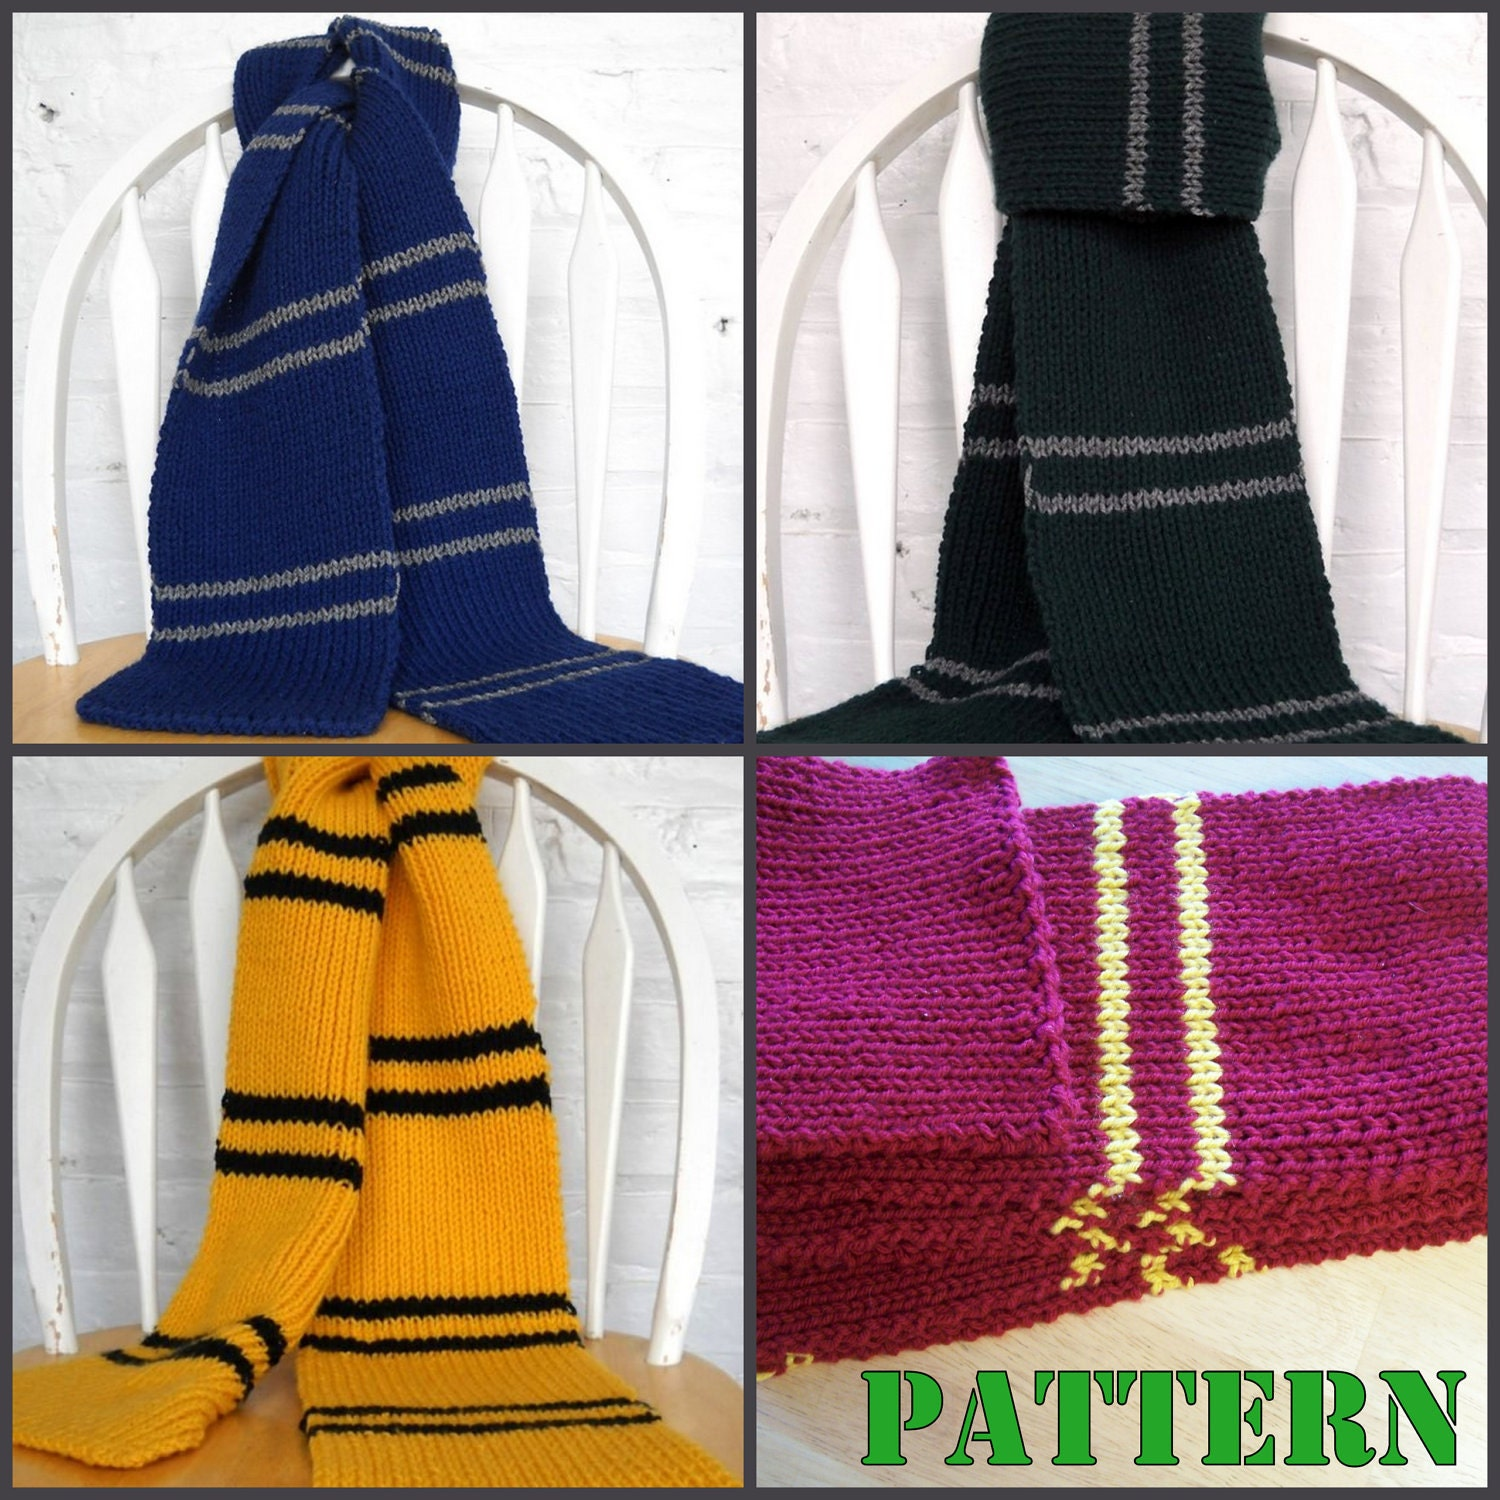 Knitting Pattern For Gryffindor Scarf : KNITTING PATTERN Hogwarts Inspired House Scarves by LowlaBug